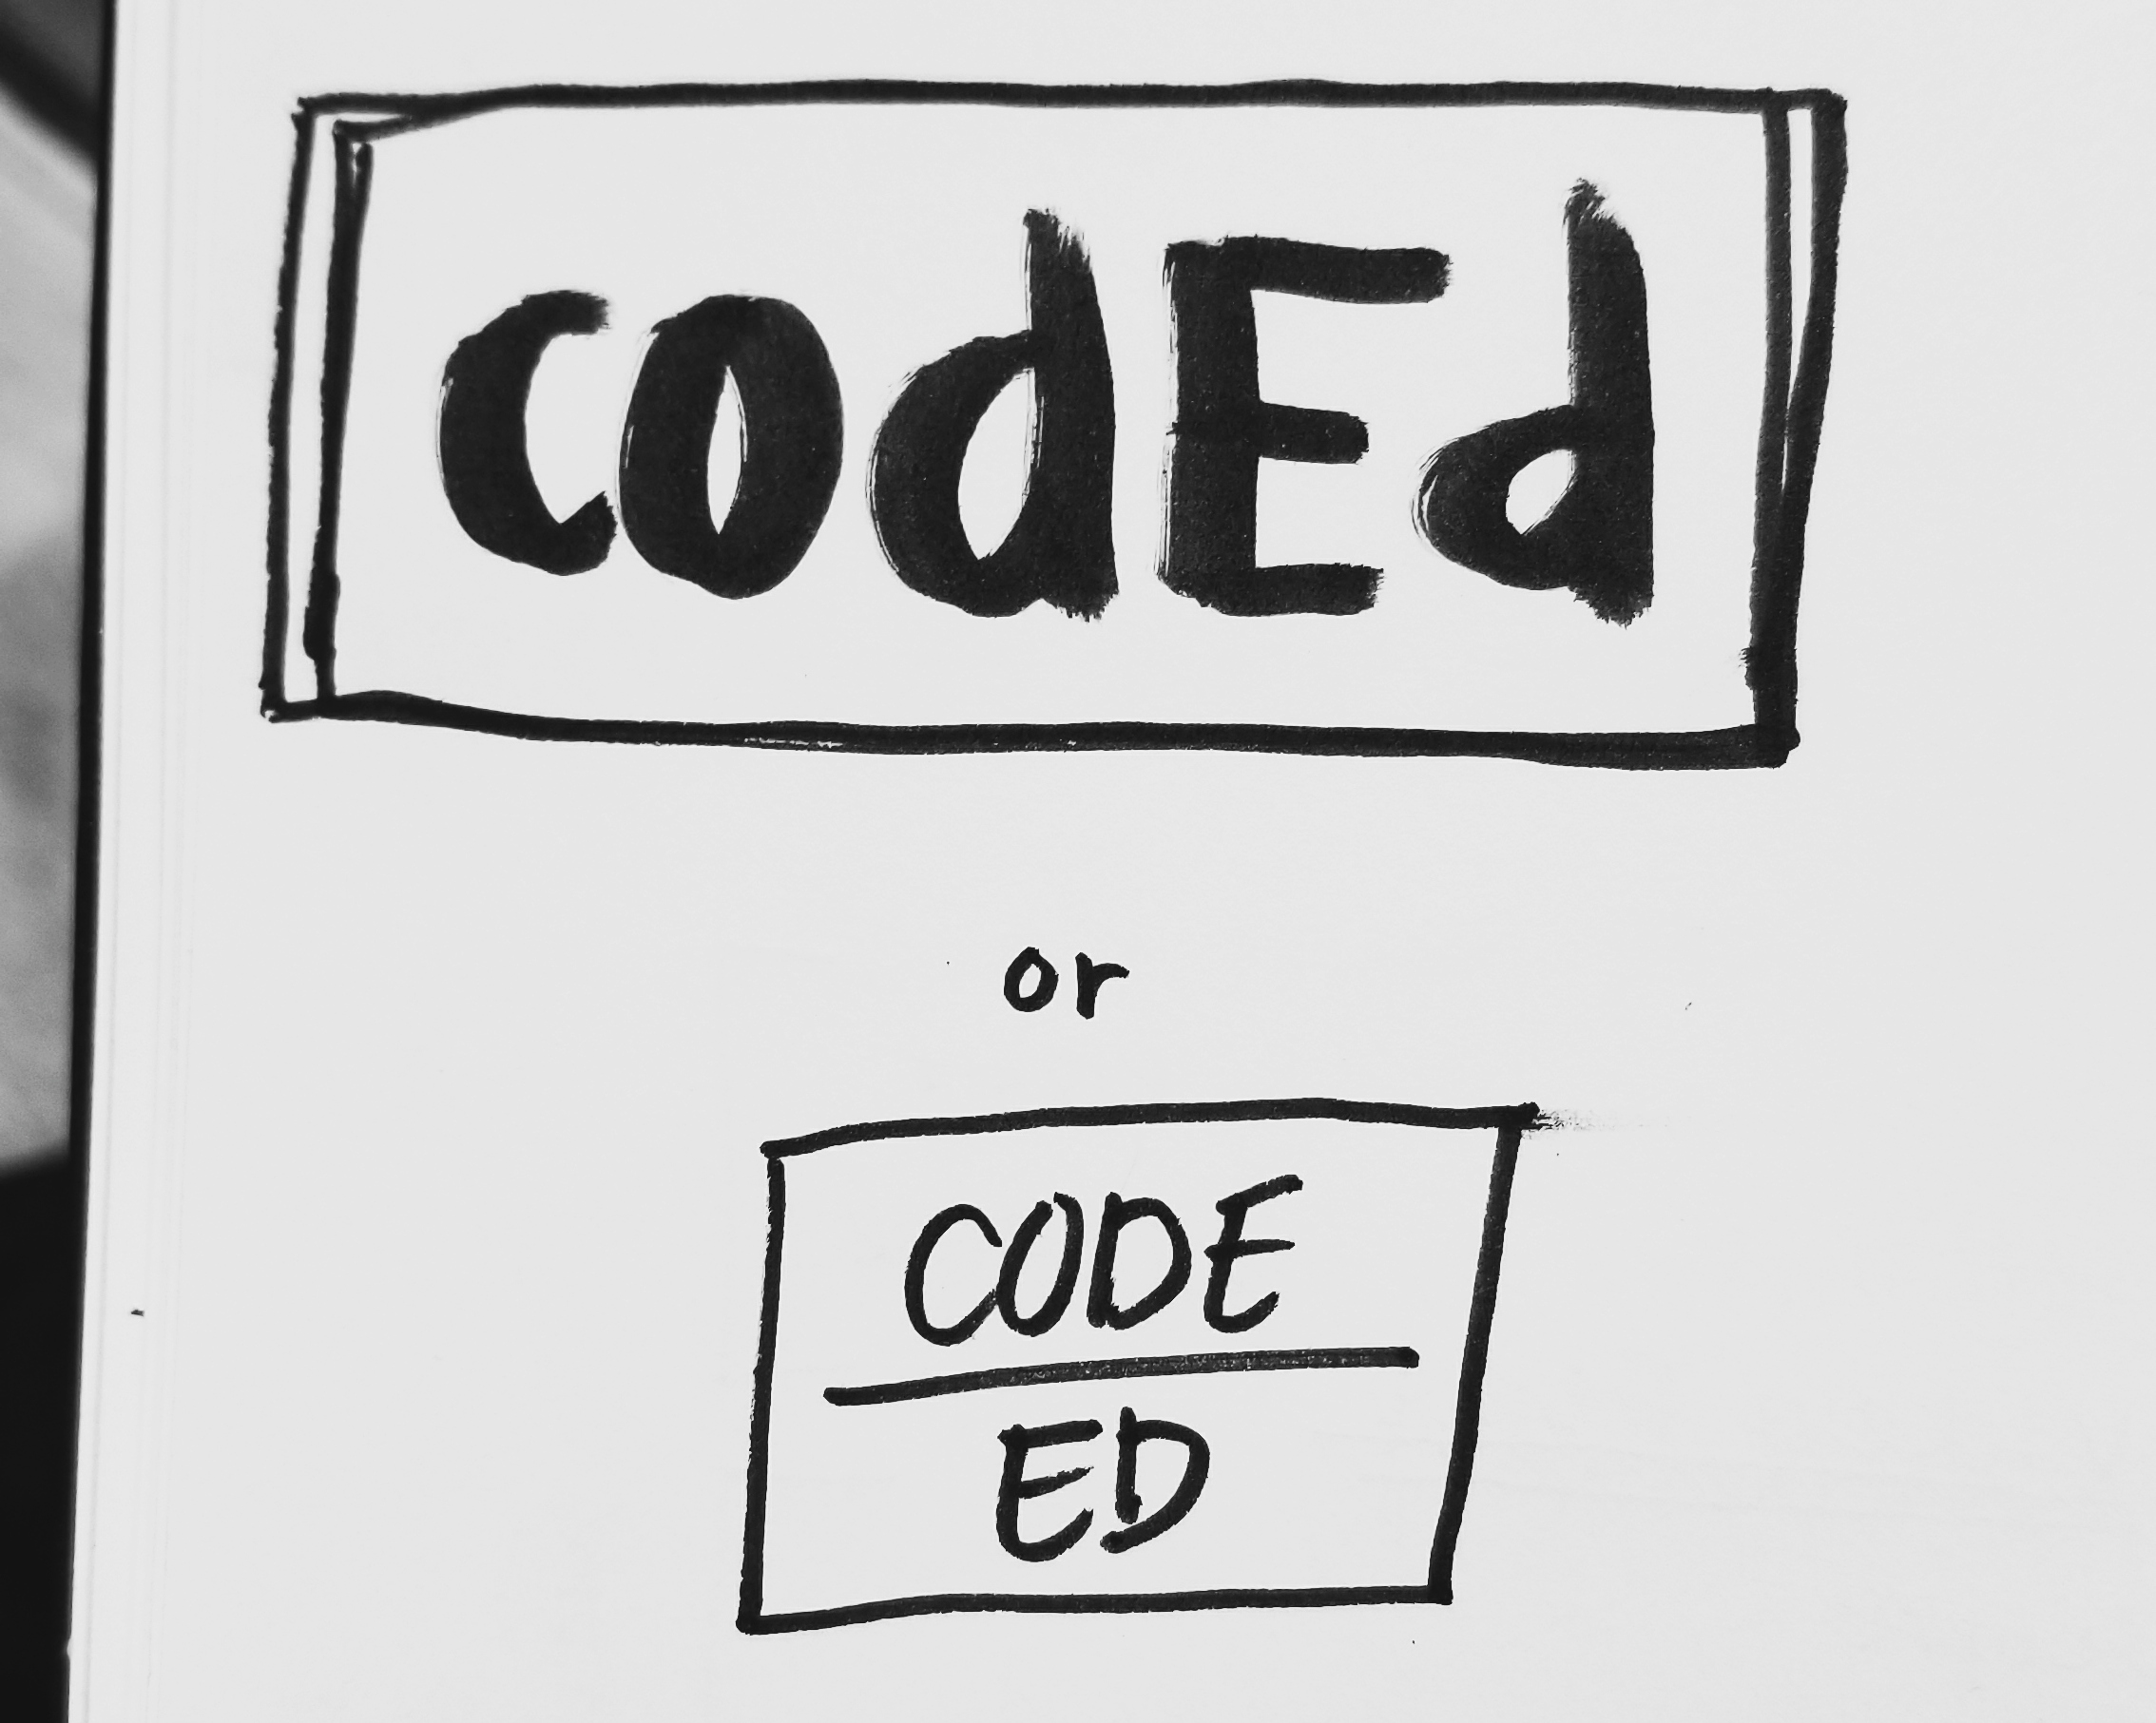 CodEd, another proposed name for the organization.